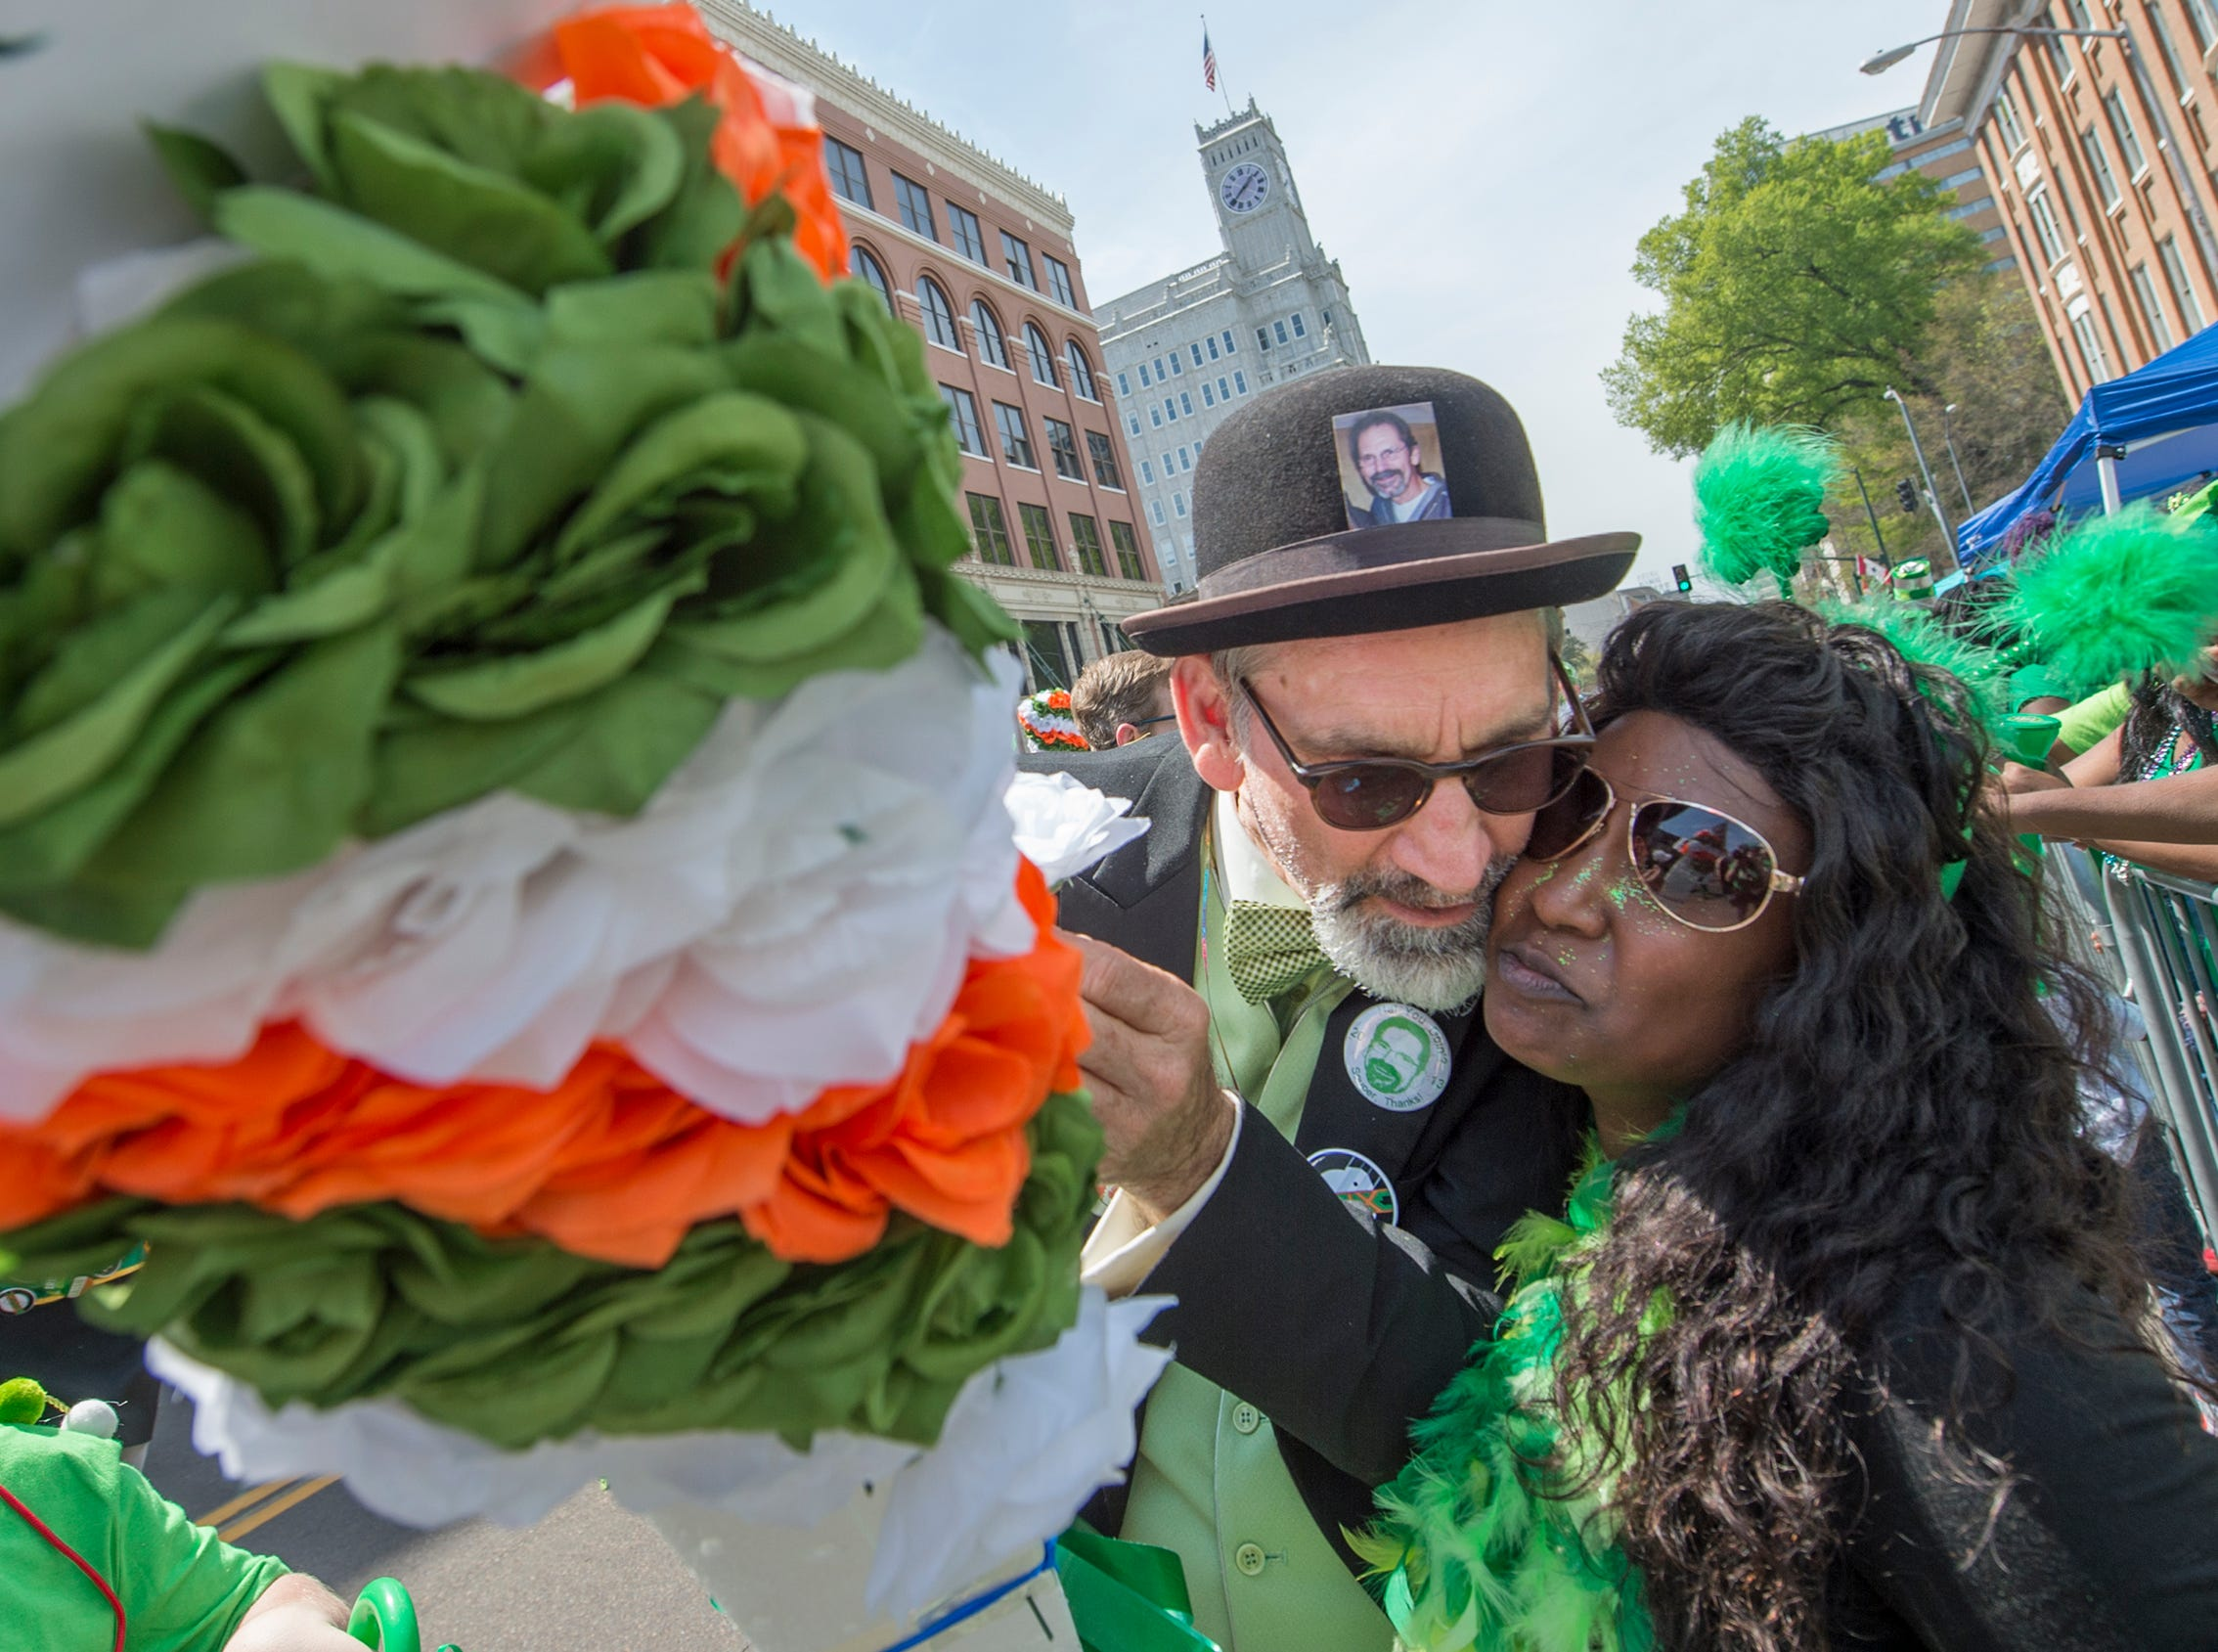 With a photo of his brother, Hal White, tucked firmly in the bond of his derby, Malcolm White gives a flower to Niki Thompson Shearry of Jackson and gets a hug and kiss in return during Hal's St. Paddy's Day Parade Saturday, March 23, 2019. Hal White is the namesake of the parade.